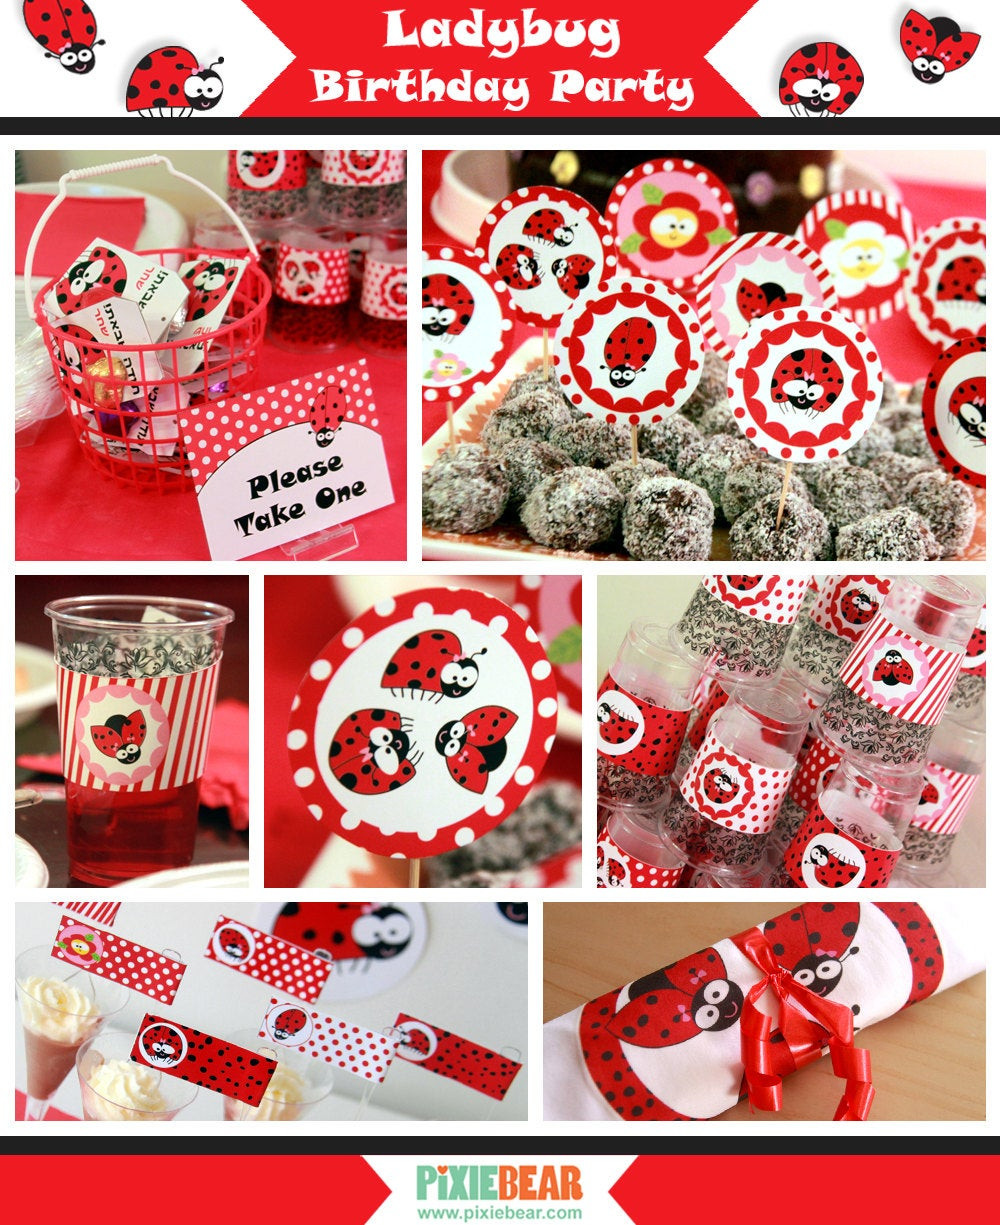 Best ideas about Ladybug Birthday Party . Save or Pin Ladybug Birthday Ladybug Party Lady Bug Birthday Lady Now.